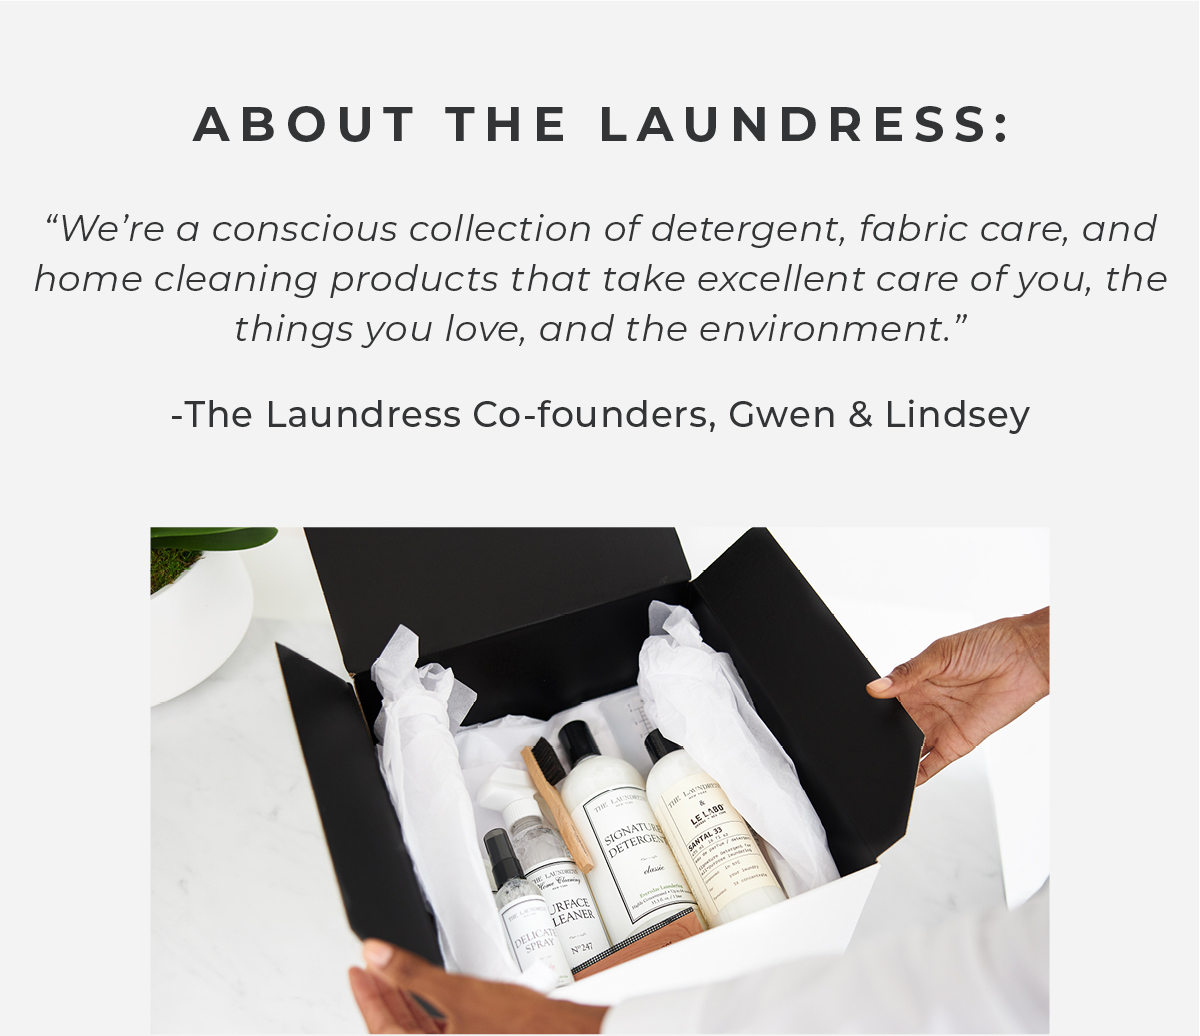 About The Laundress